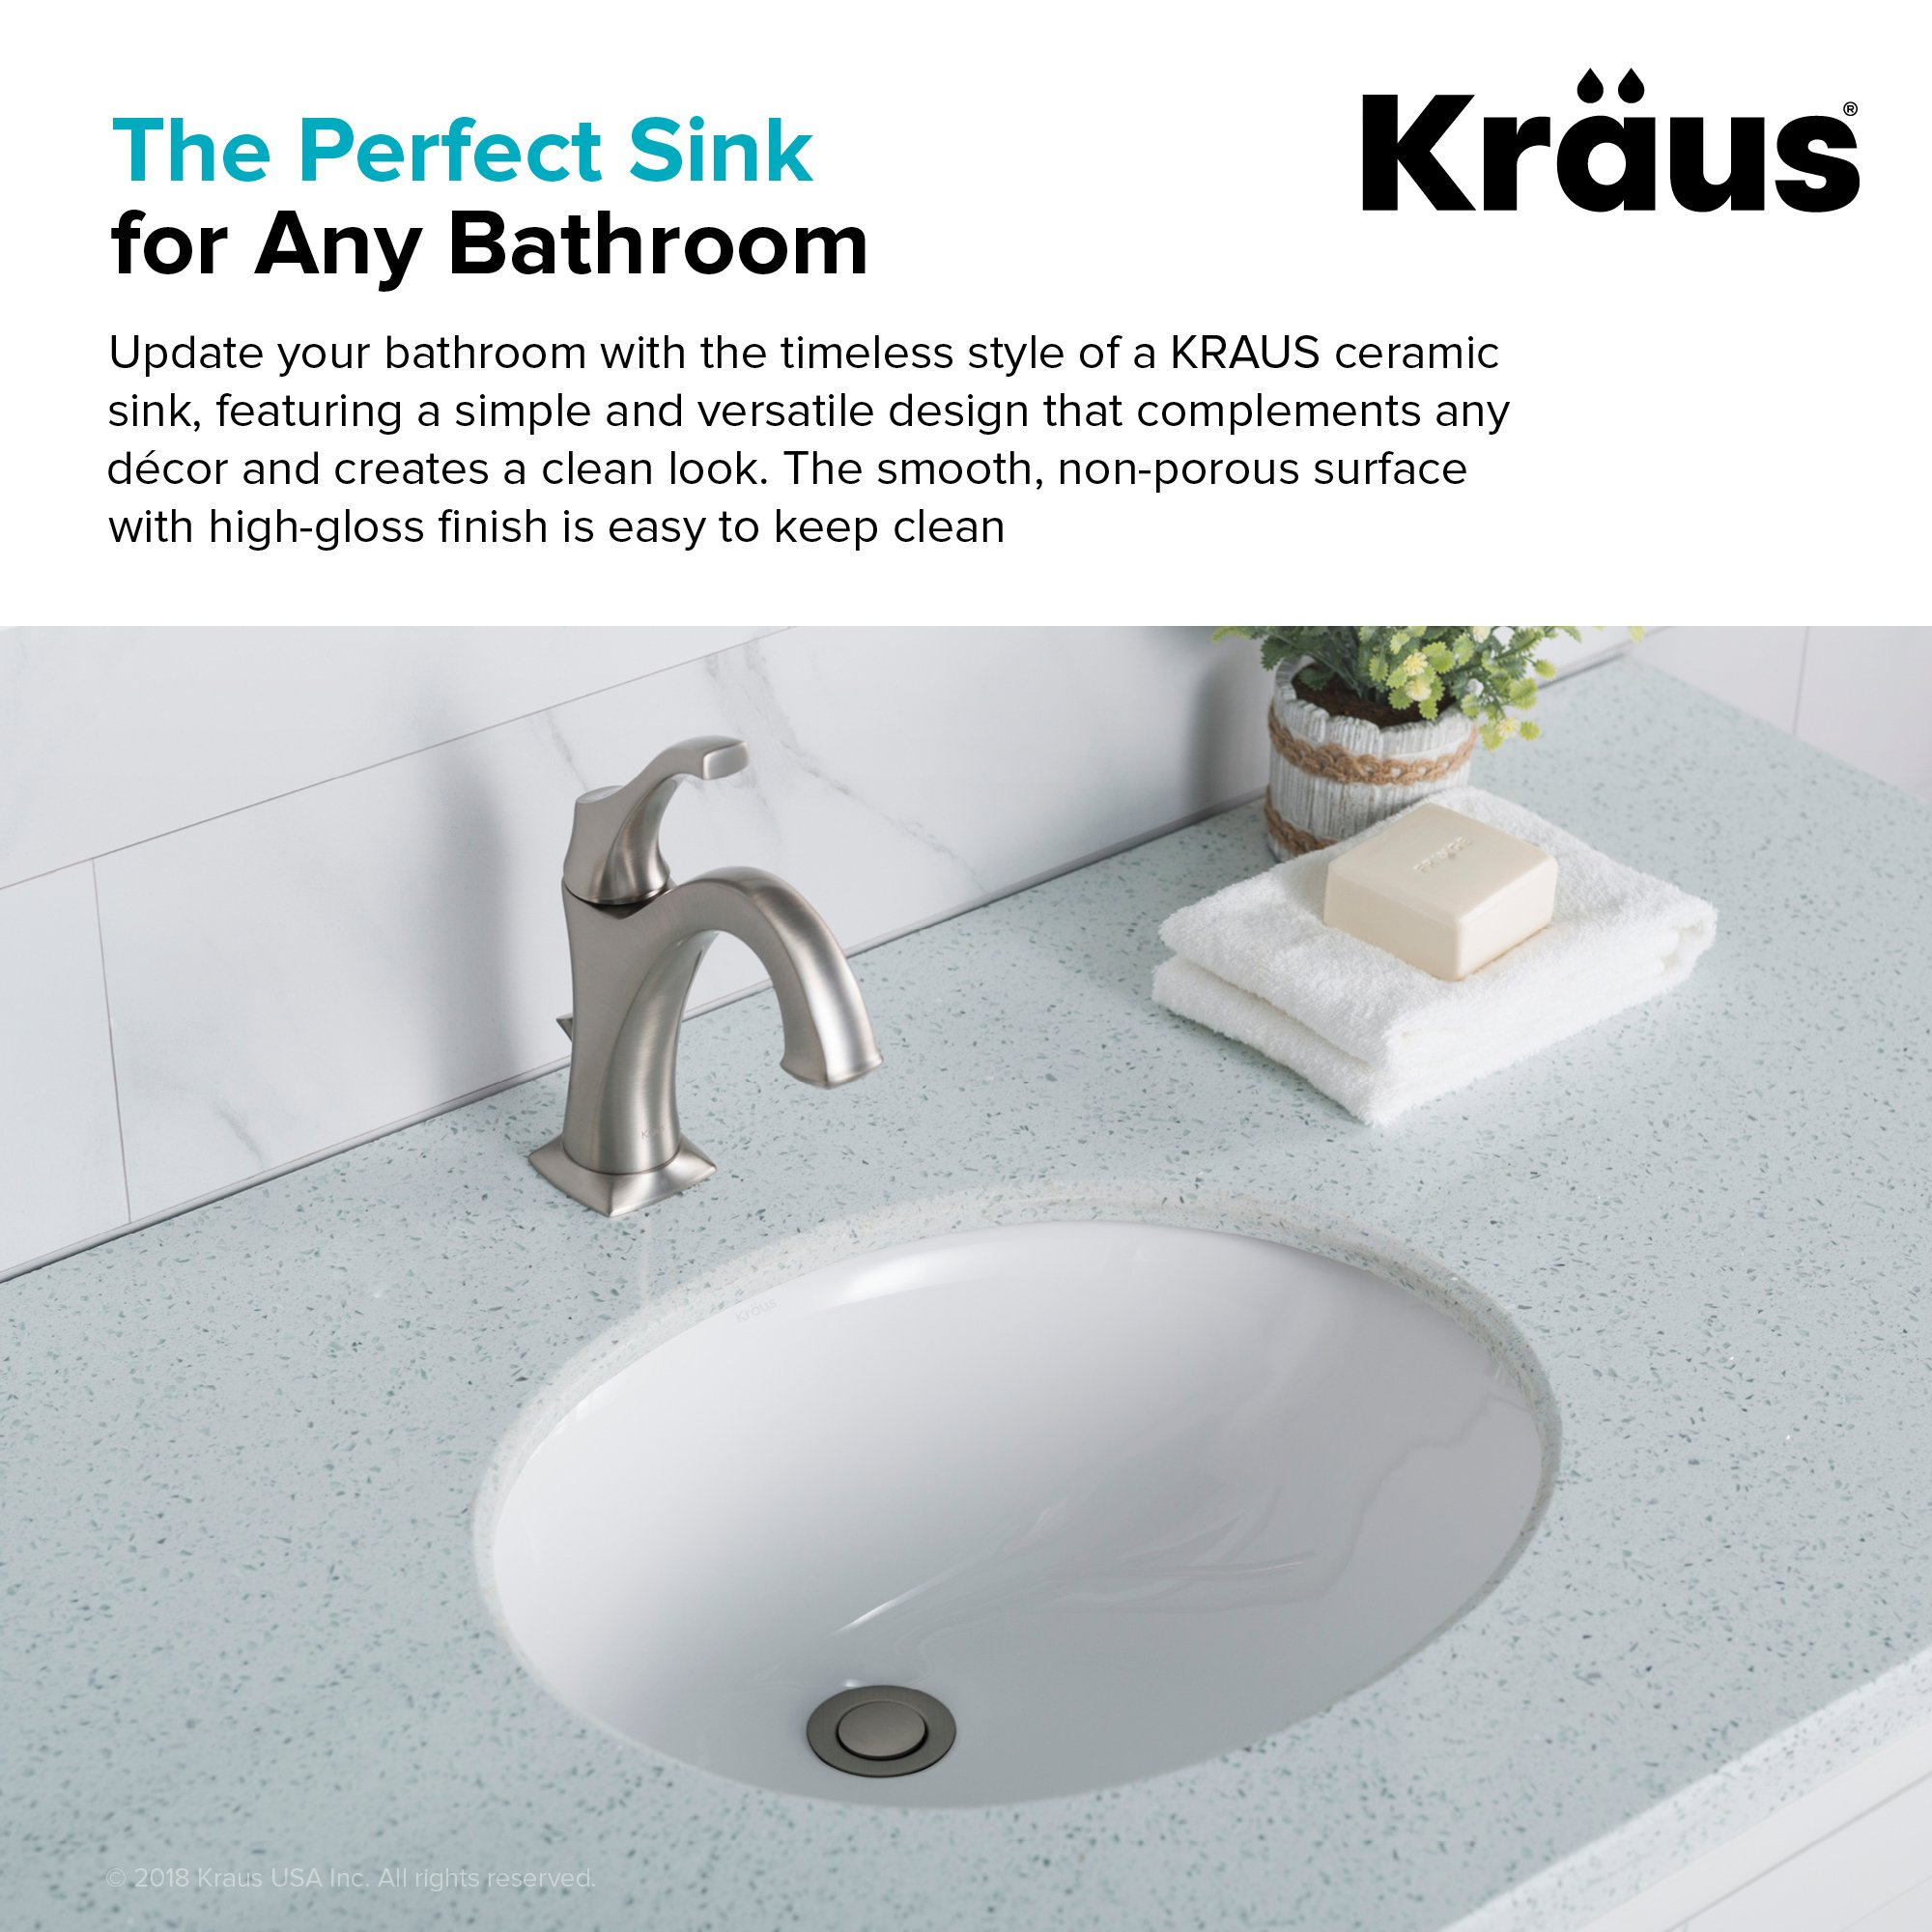 KRAUS Elavo 17 Inch Oval Undermount Porcelain Ceramic Bathroom Sink in White with Overflow, KCU-211 by Kraus (Image #6)